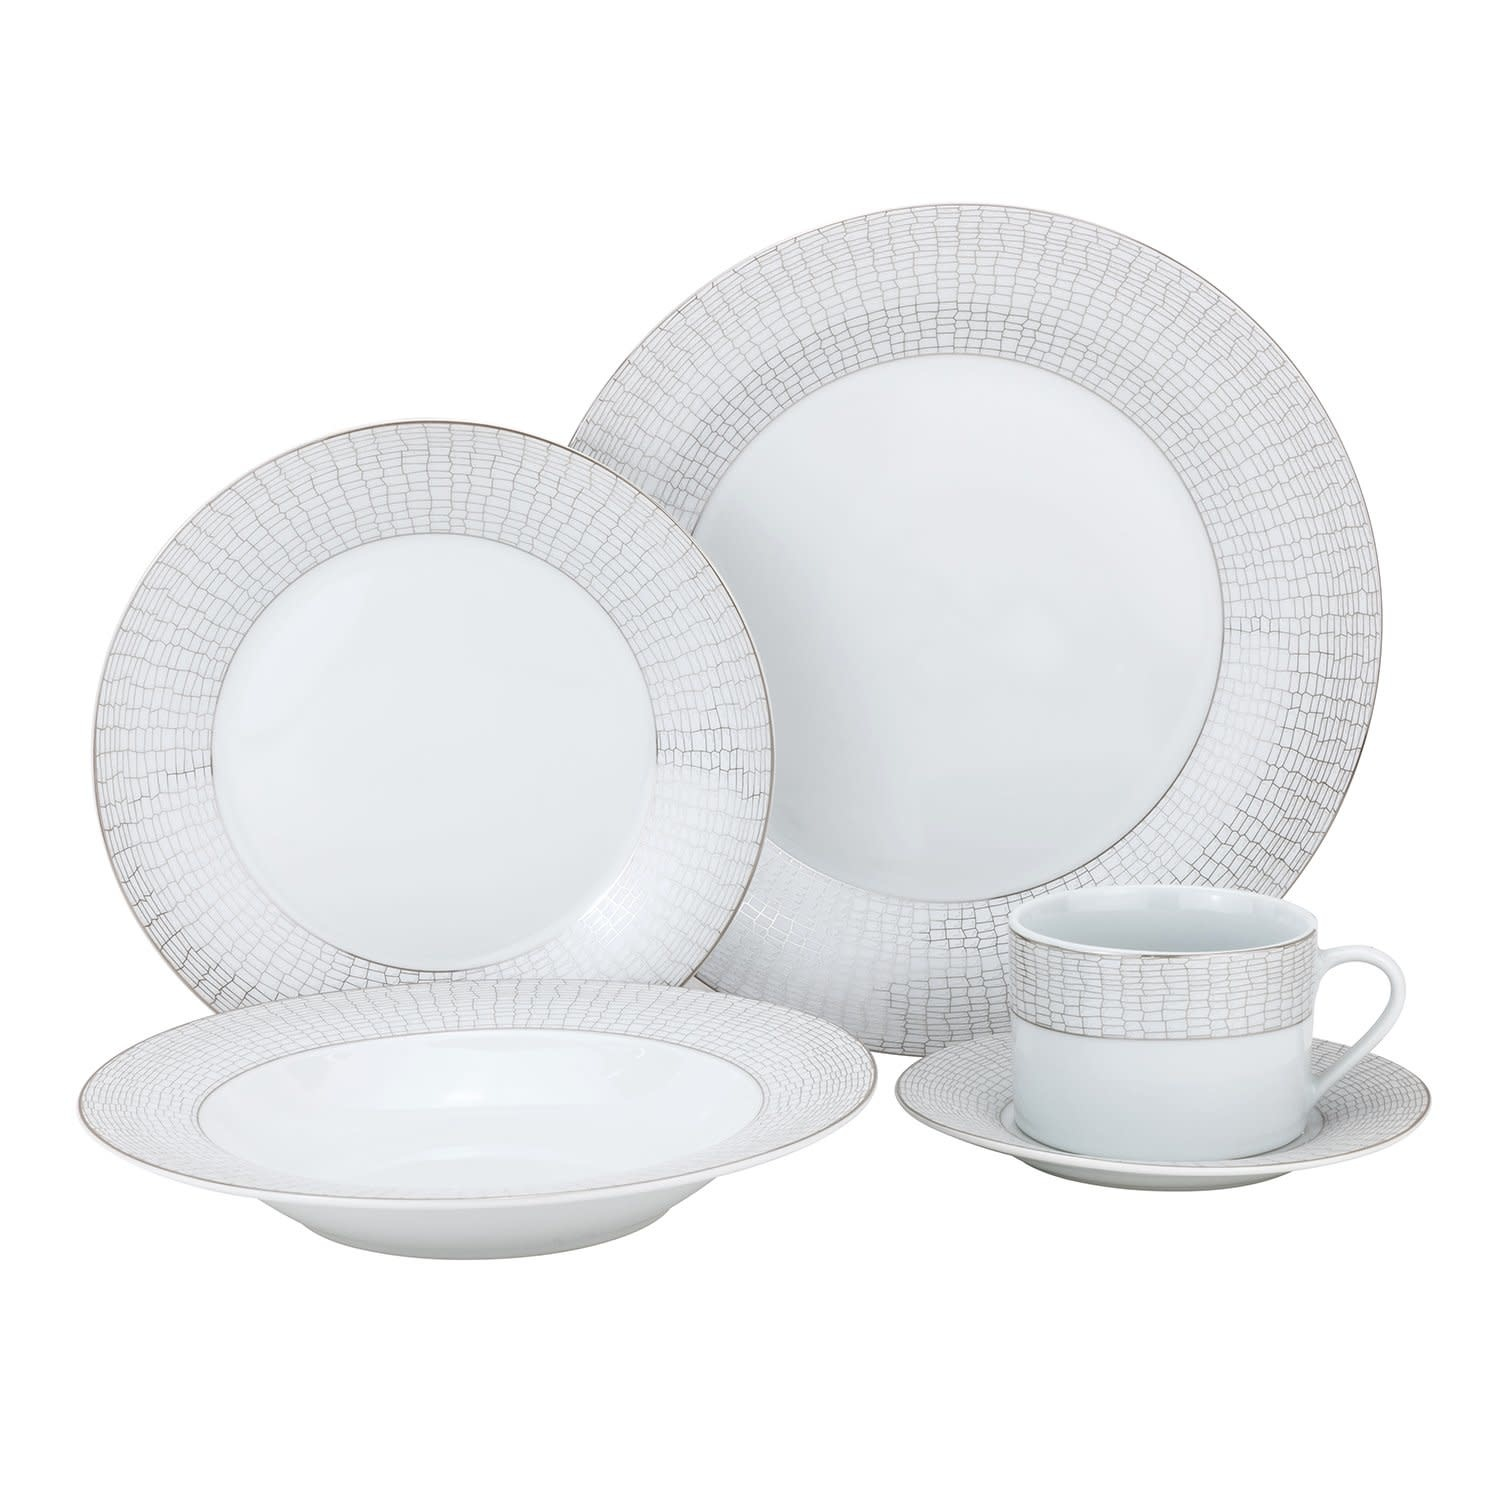 Croc 20 pc Dinnerware Set